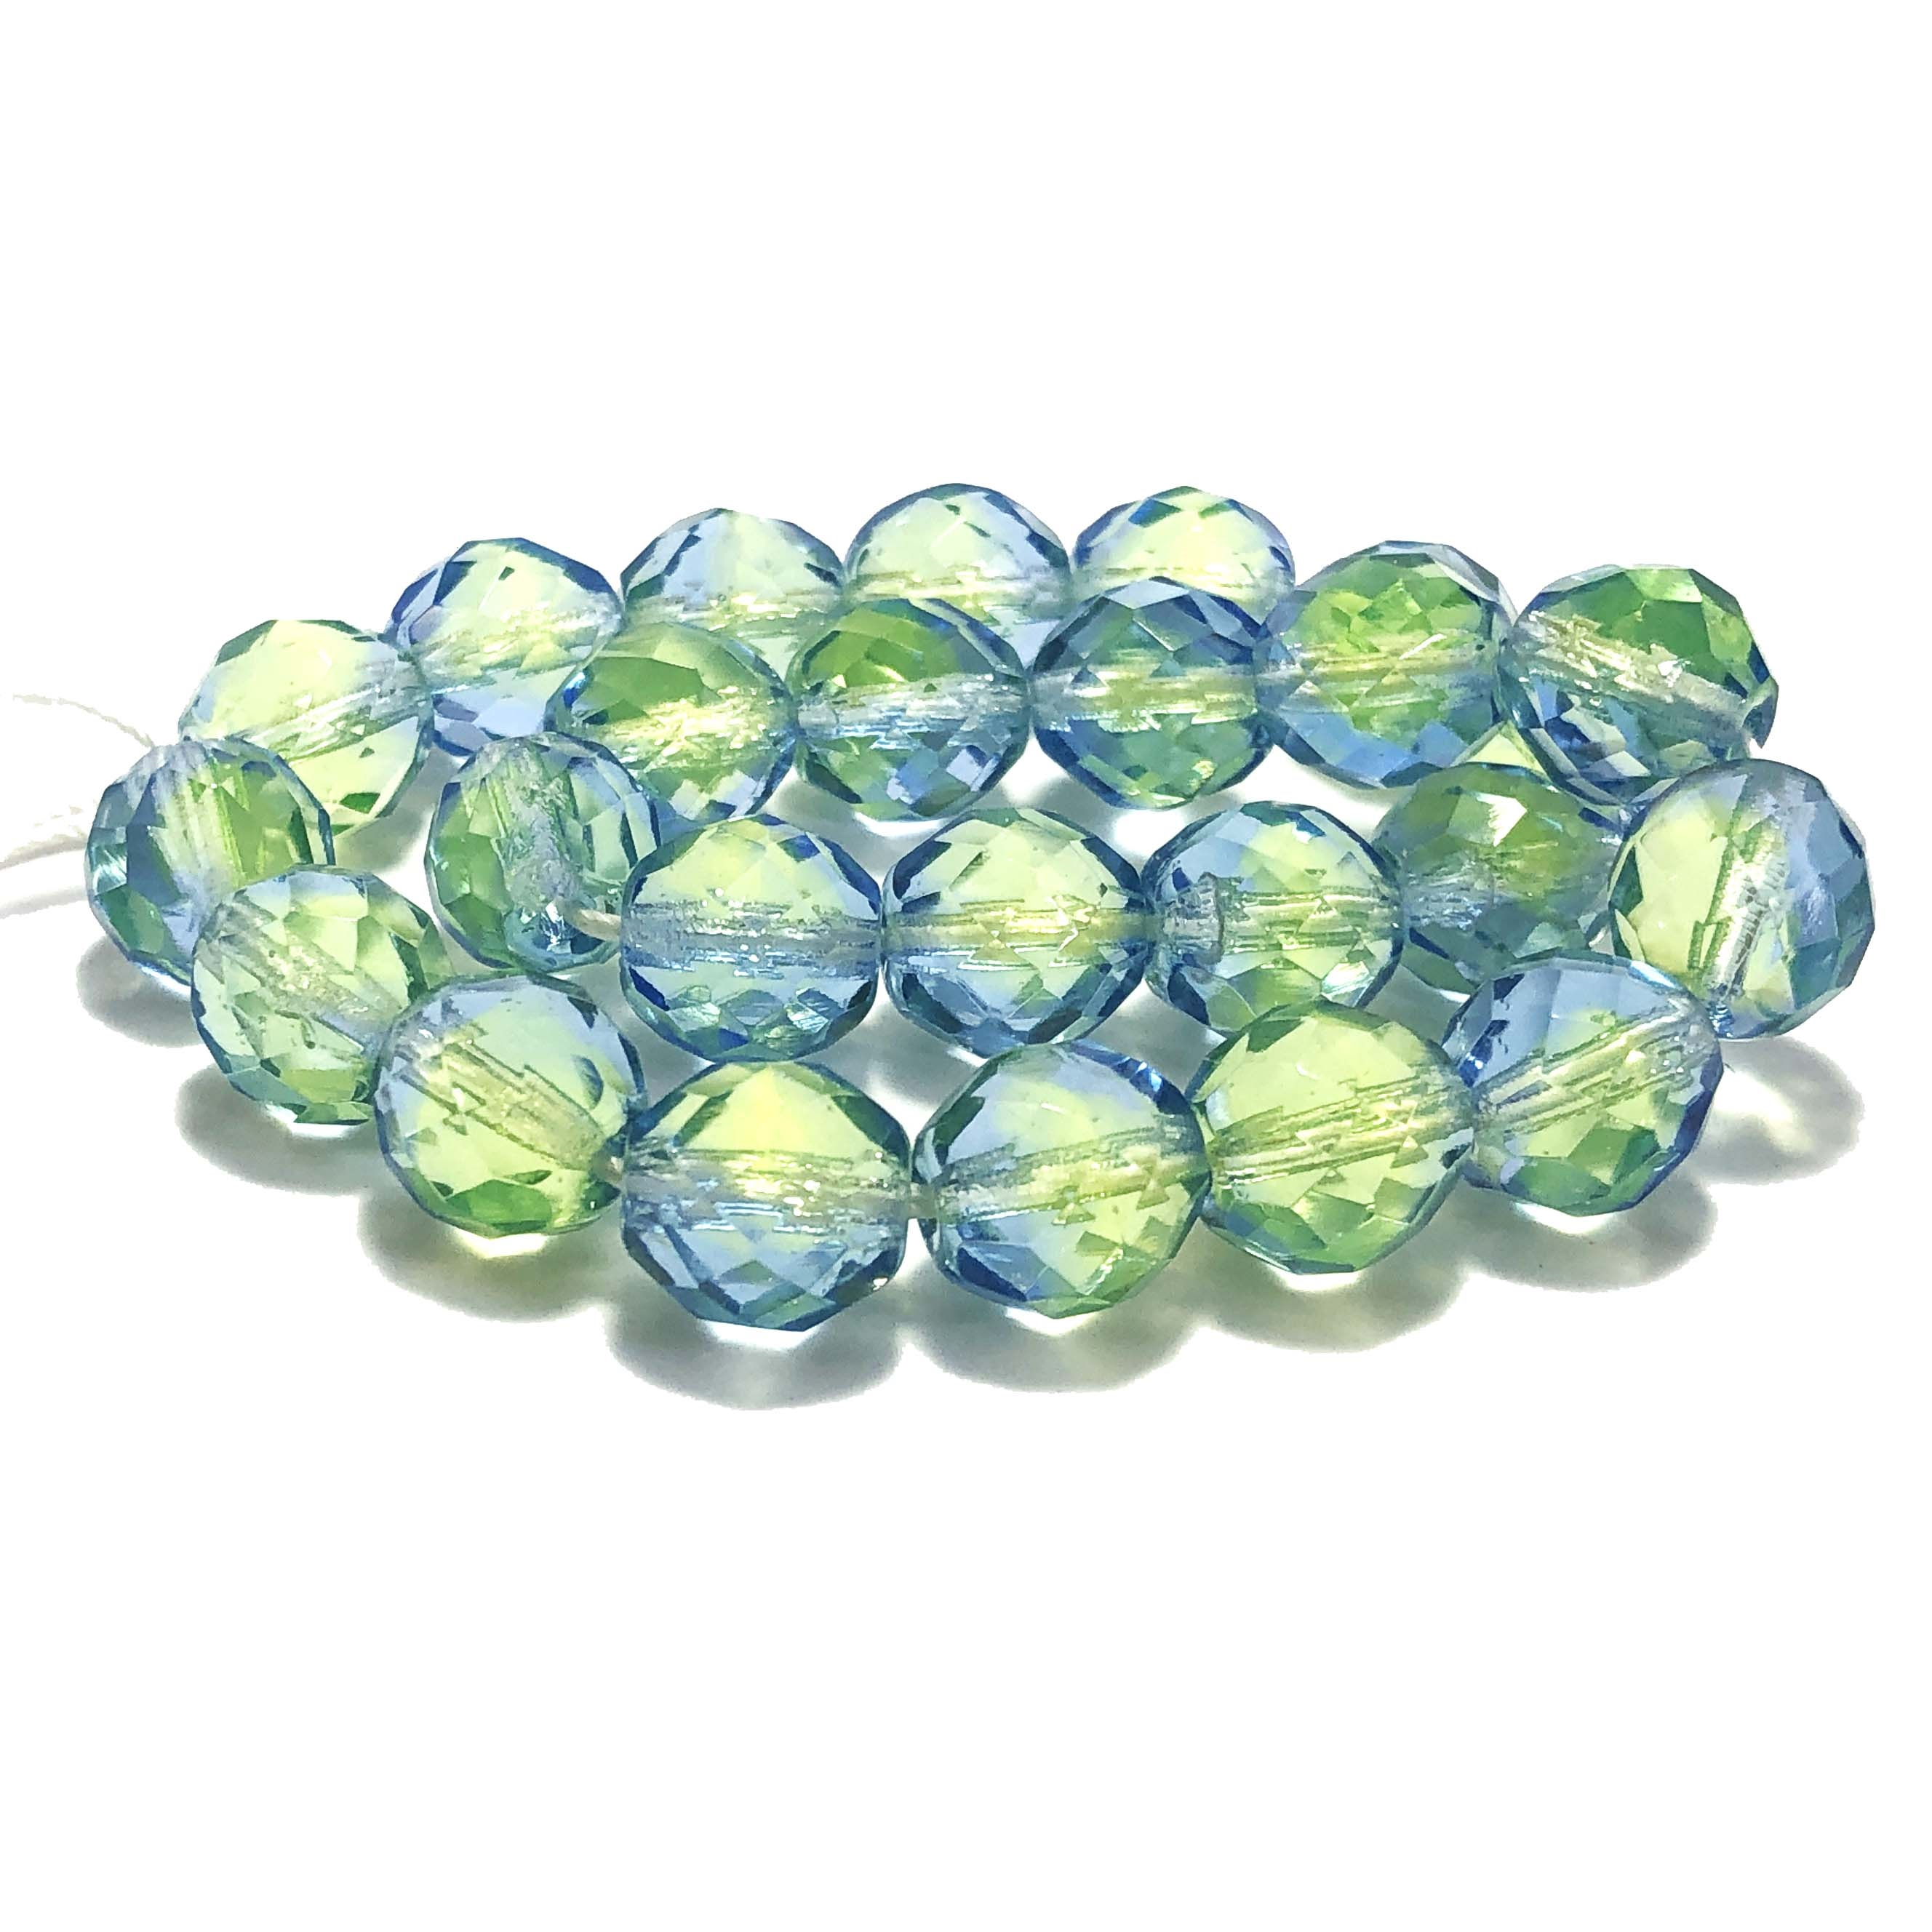 fire polished beads, Czech, lime sapphire, jewelry making ,jewelry supplies, vintage supplies, B'sue Boutiques, lime beads, light sapphire beads, glass beads, faceted beads, sapphire beads, beading supplies, 10mm, ombre beads, transparent beads, 049